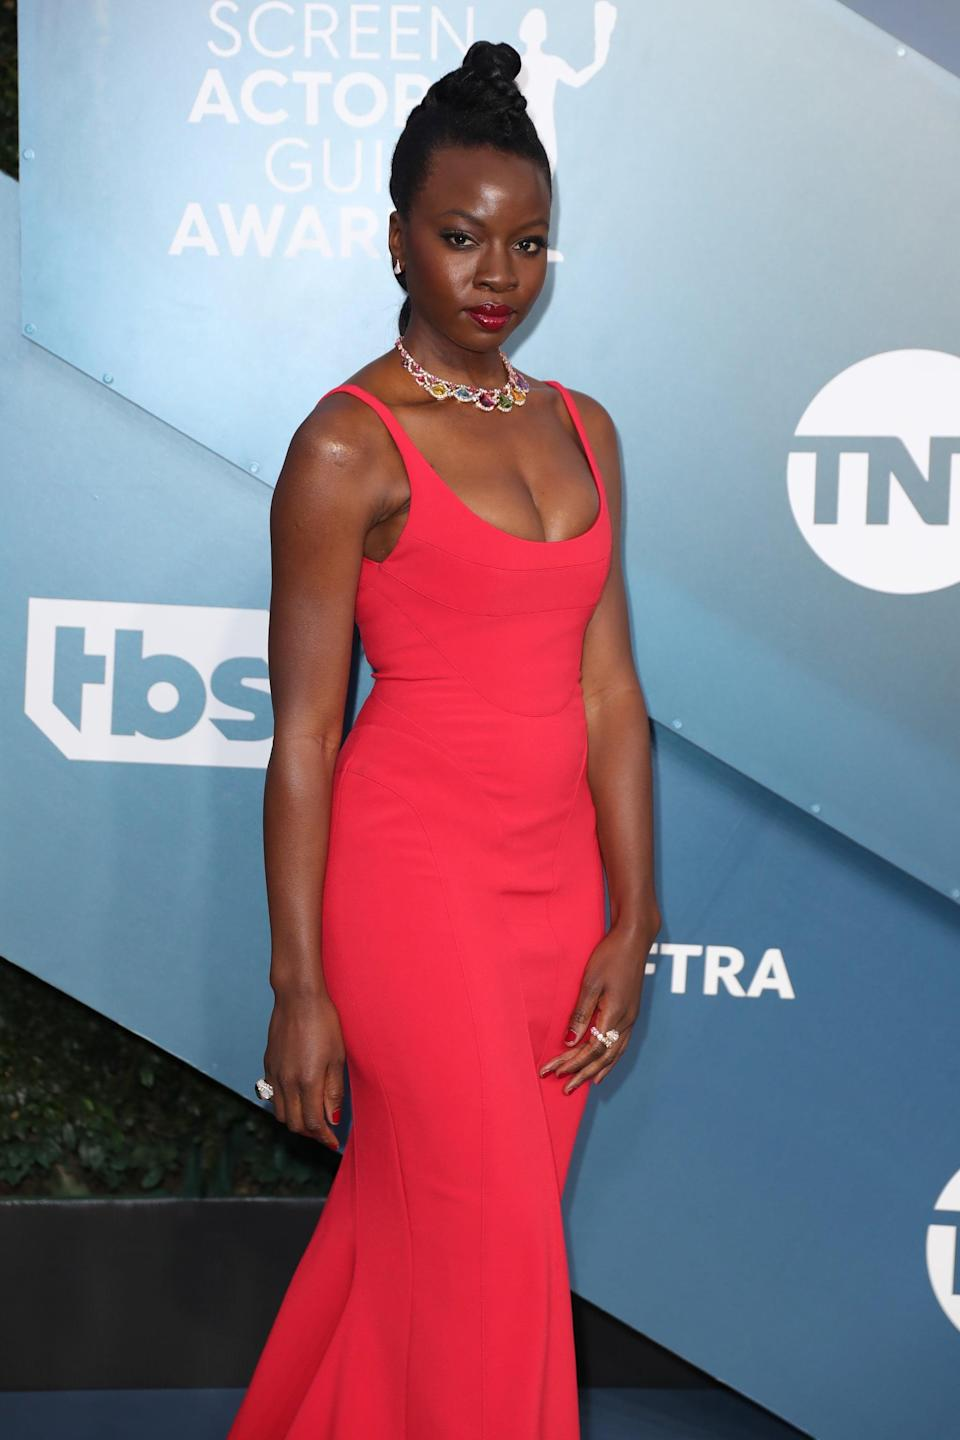 """<p>Gurira will bring her portrayal of Okoye, head of the Dora Milaje, back to the big screen in the <strong><a class=""""link rapid-noclick-resp"""" href=""""https://www.popsugar.com/latest/Black-Panther"""" rel=""""nofollow noopener"""" target=""""_blank"""" data-ylk=""""slk:Black Panther"""">Black Panther</a></strong> sequel. She also happens to be a true multihyphenate: in addition to acting in major roles like Okoye and <strong><a class=""""link rapid-noclick-resp"""" href=""""https://www.popsugar.com/The-Walking-Dead"""" rel=""""nofollow noopener"""" target=""""_blank"""" data-ylk=""""slk:The Walking Dead"""">The Walking Dead</a></strong>'s Michonne, she's a Tony-nominated playwright for her play <strong>Eclipsed</strong>.</p>"""